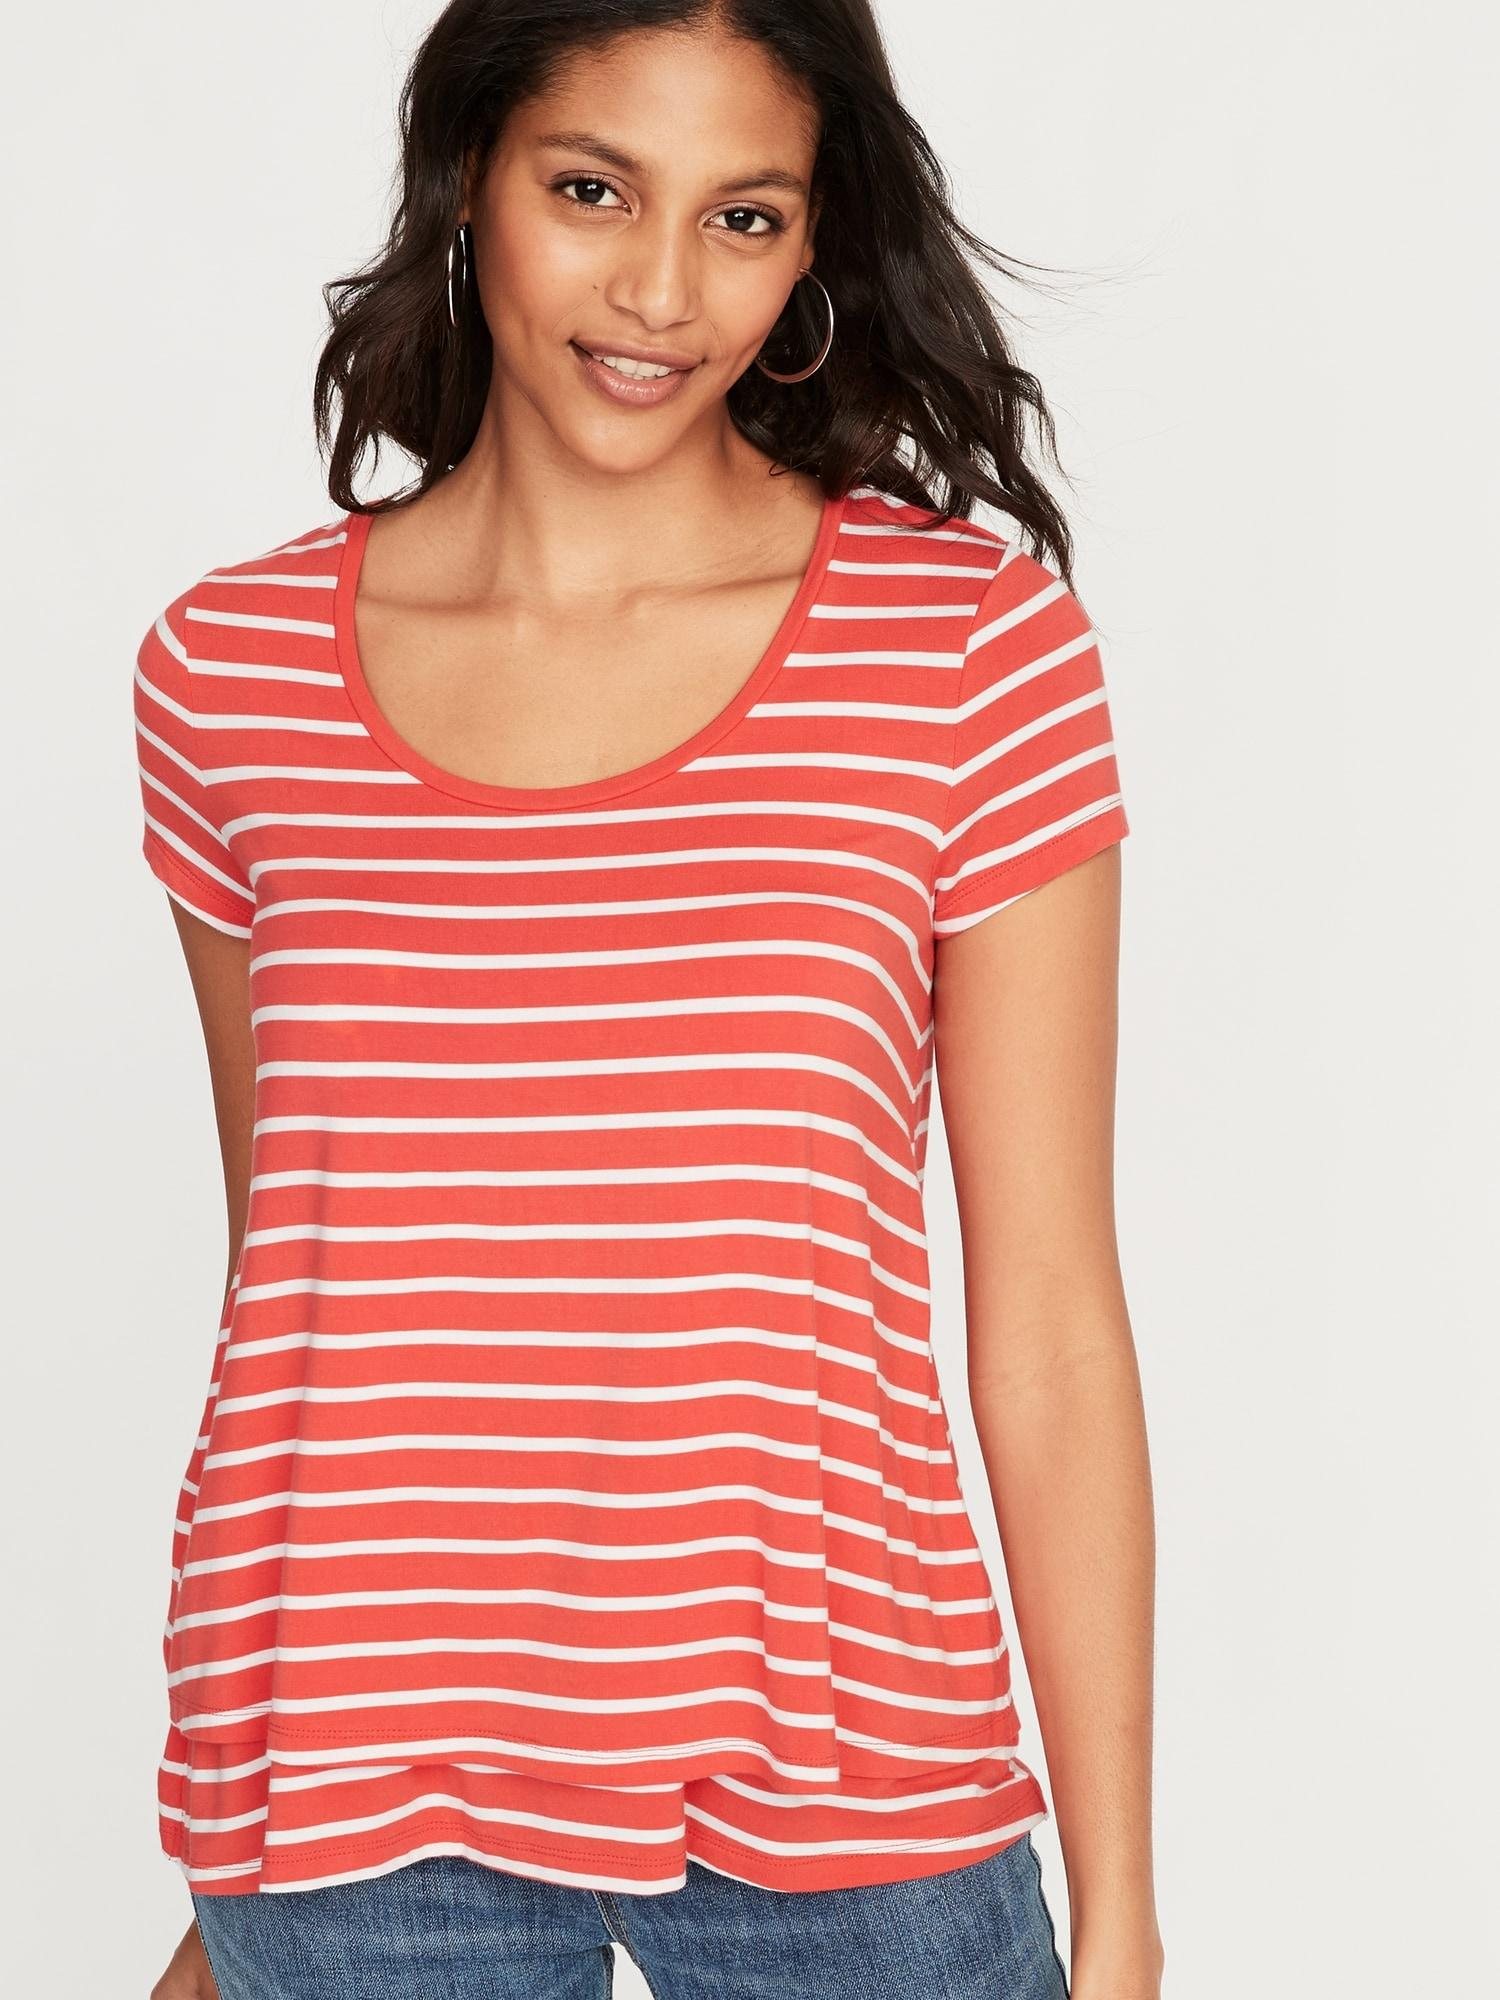 a14dd05fcc2 Lyst - Old Navy Maternity Double-layer Nursing Tee in Red